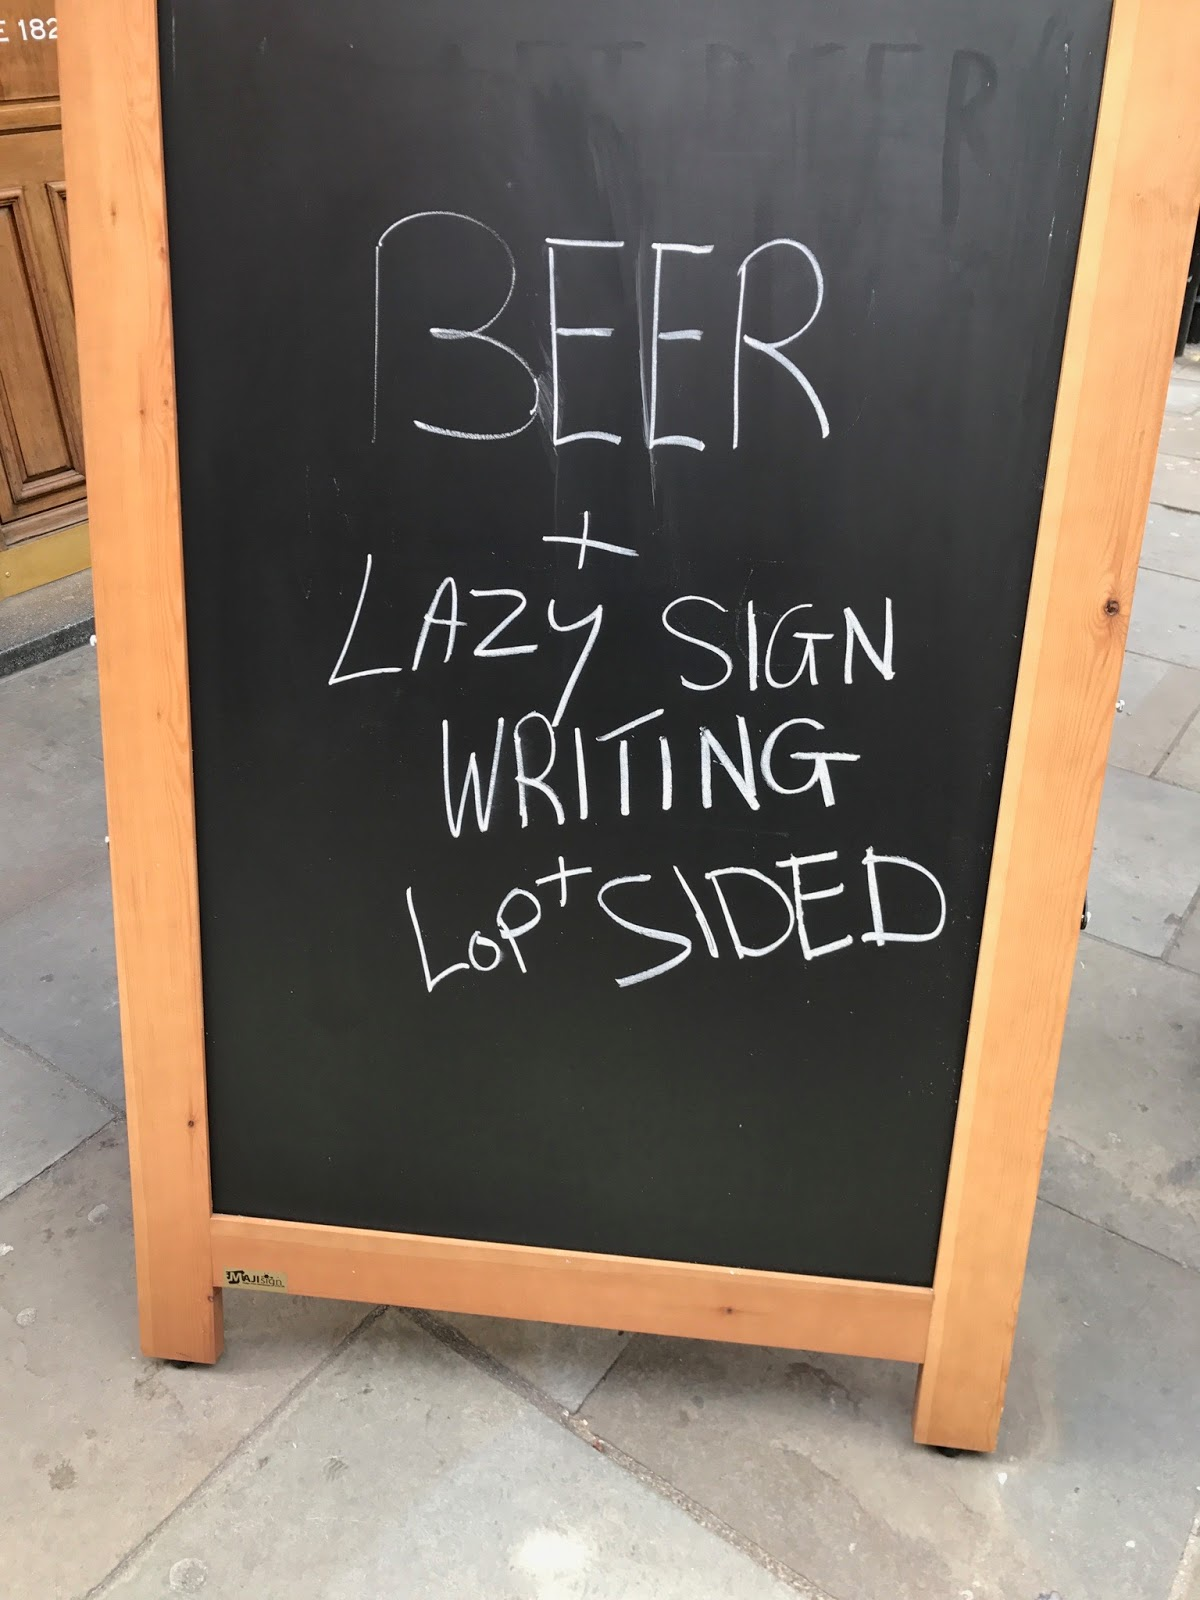 Sign saying Beer and lazy lop sided writing